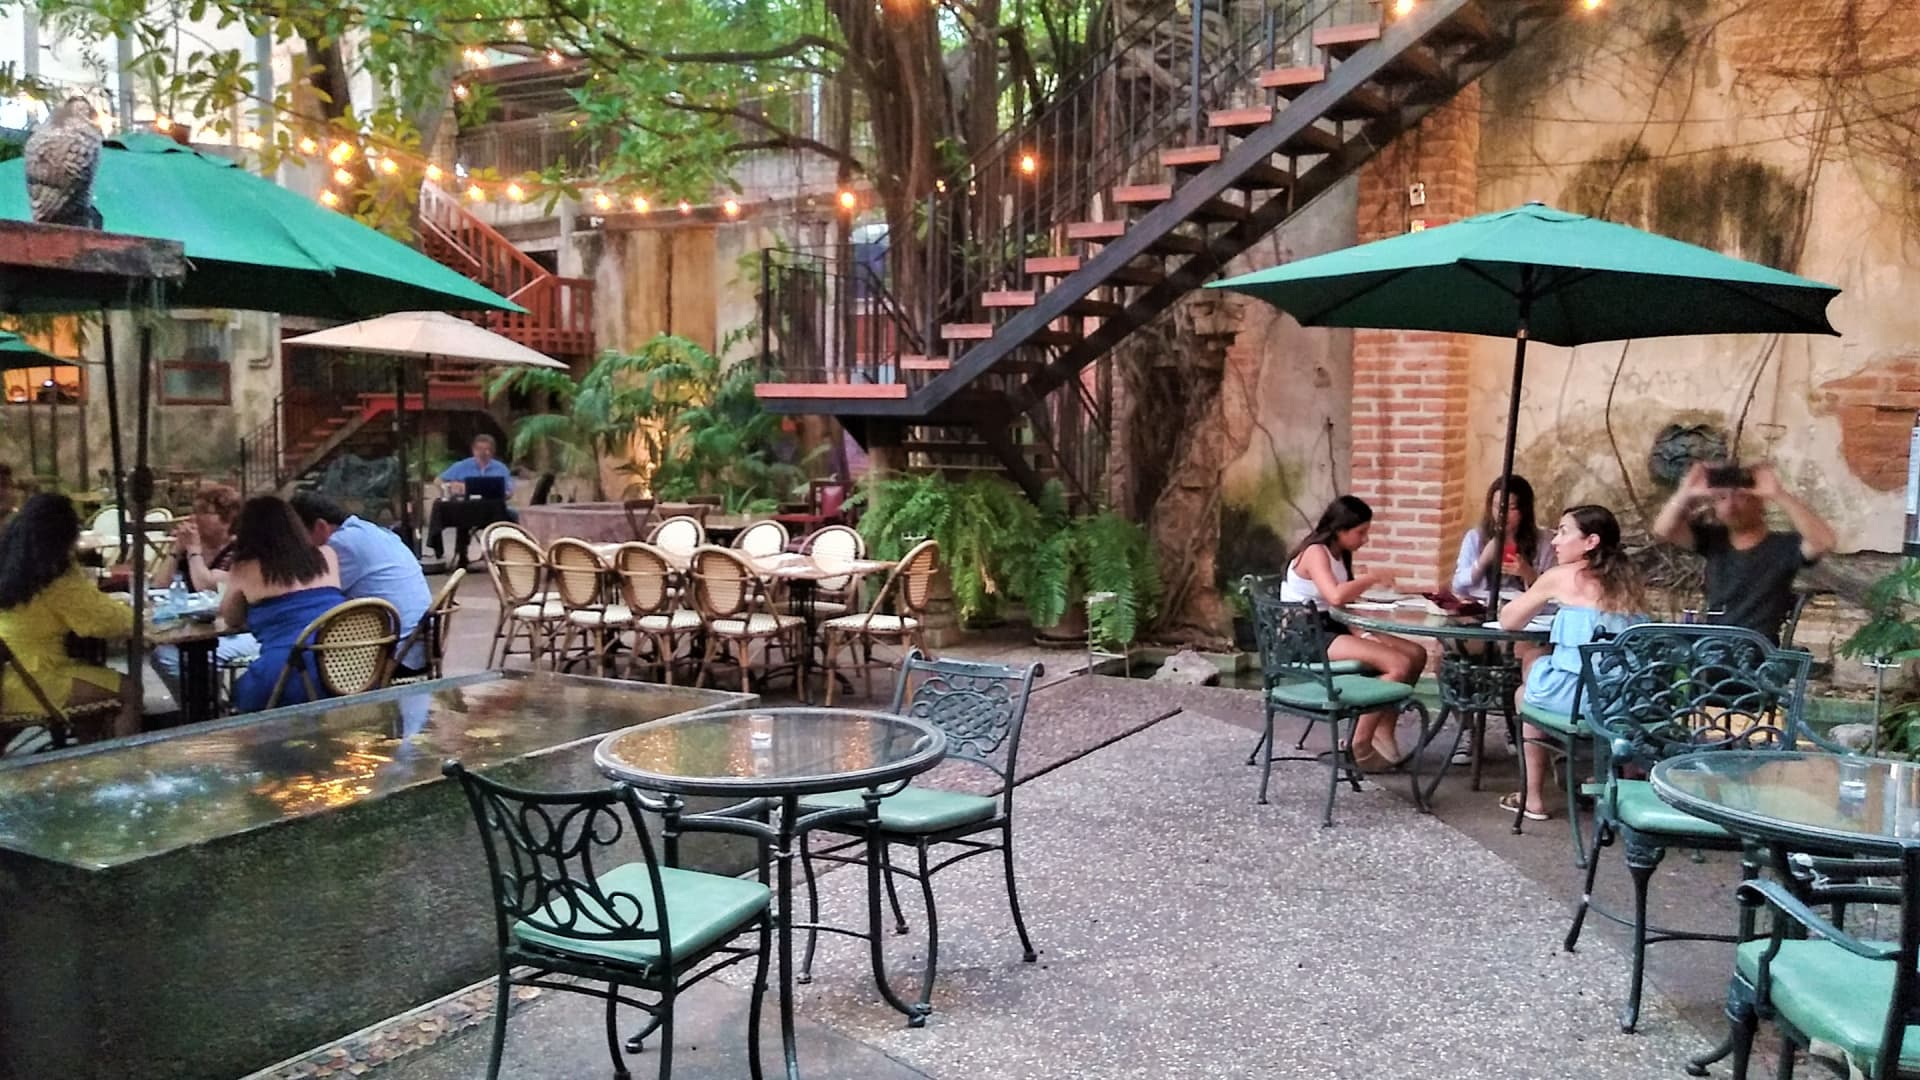 Mazatlán's Centro Historico is full of beautiful, renovated turn-of-the-century buildings, like Casa Garcia, a family hacienda transformed into an upscale restaurant and bar.